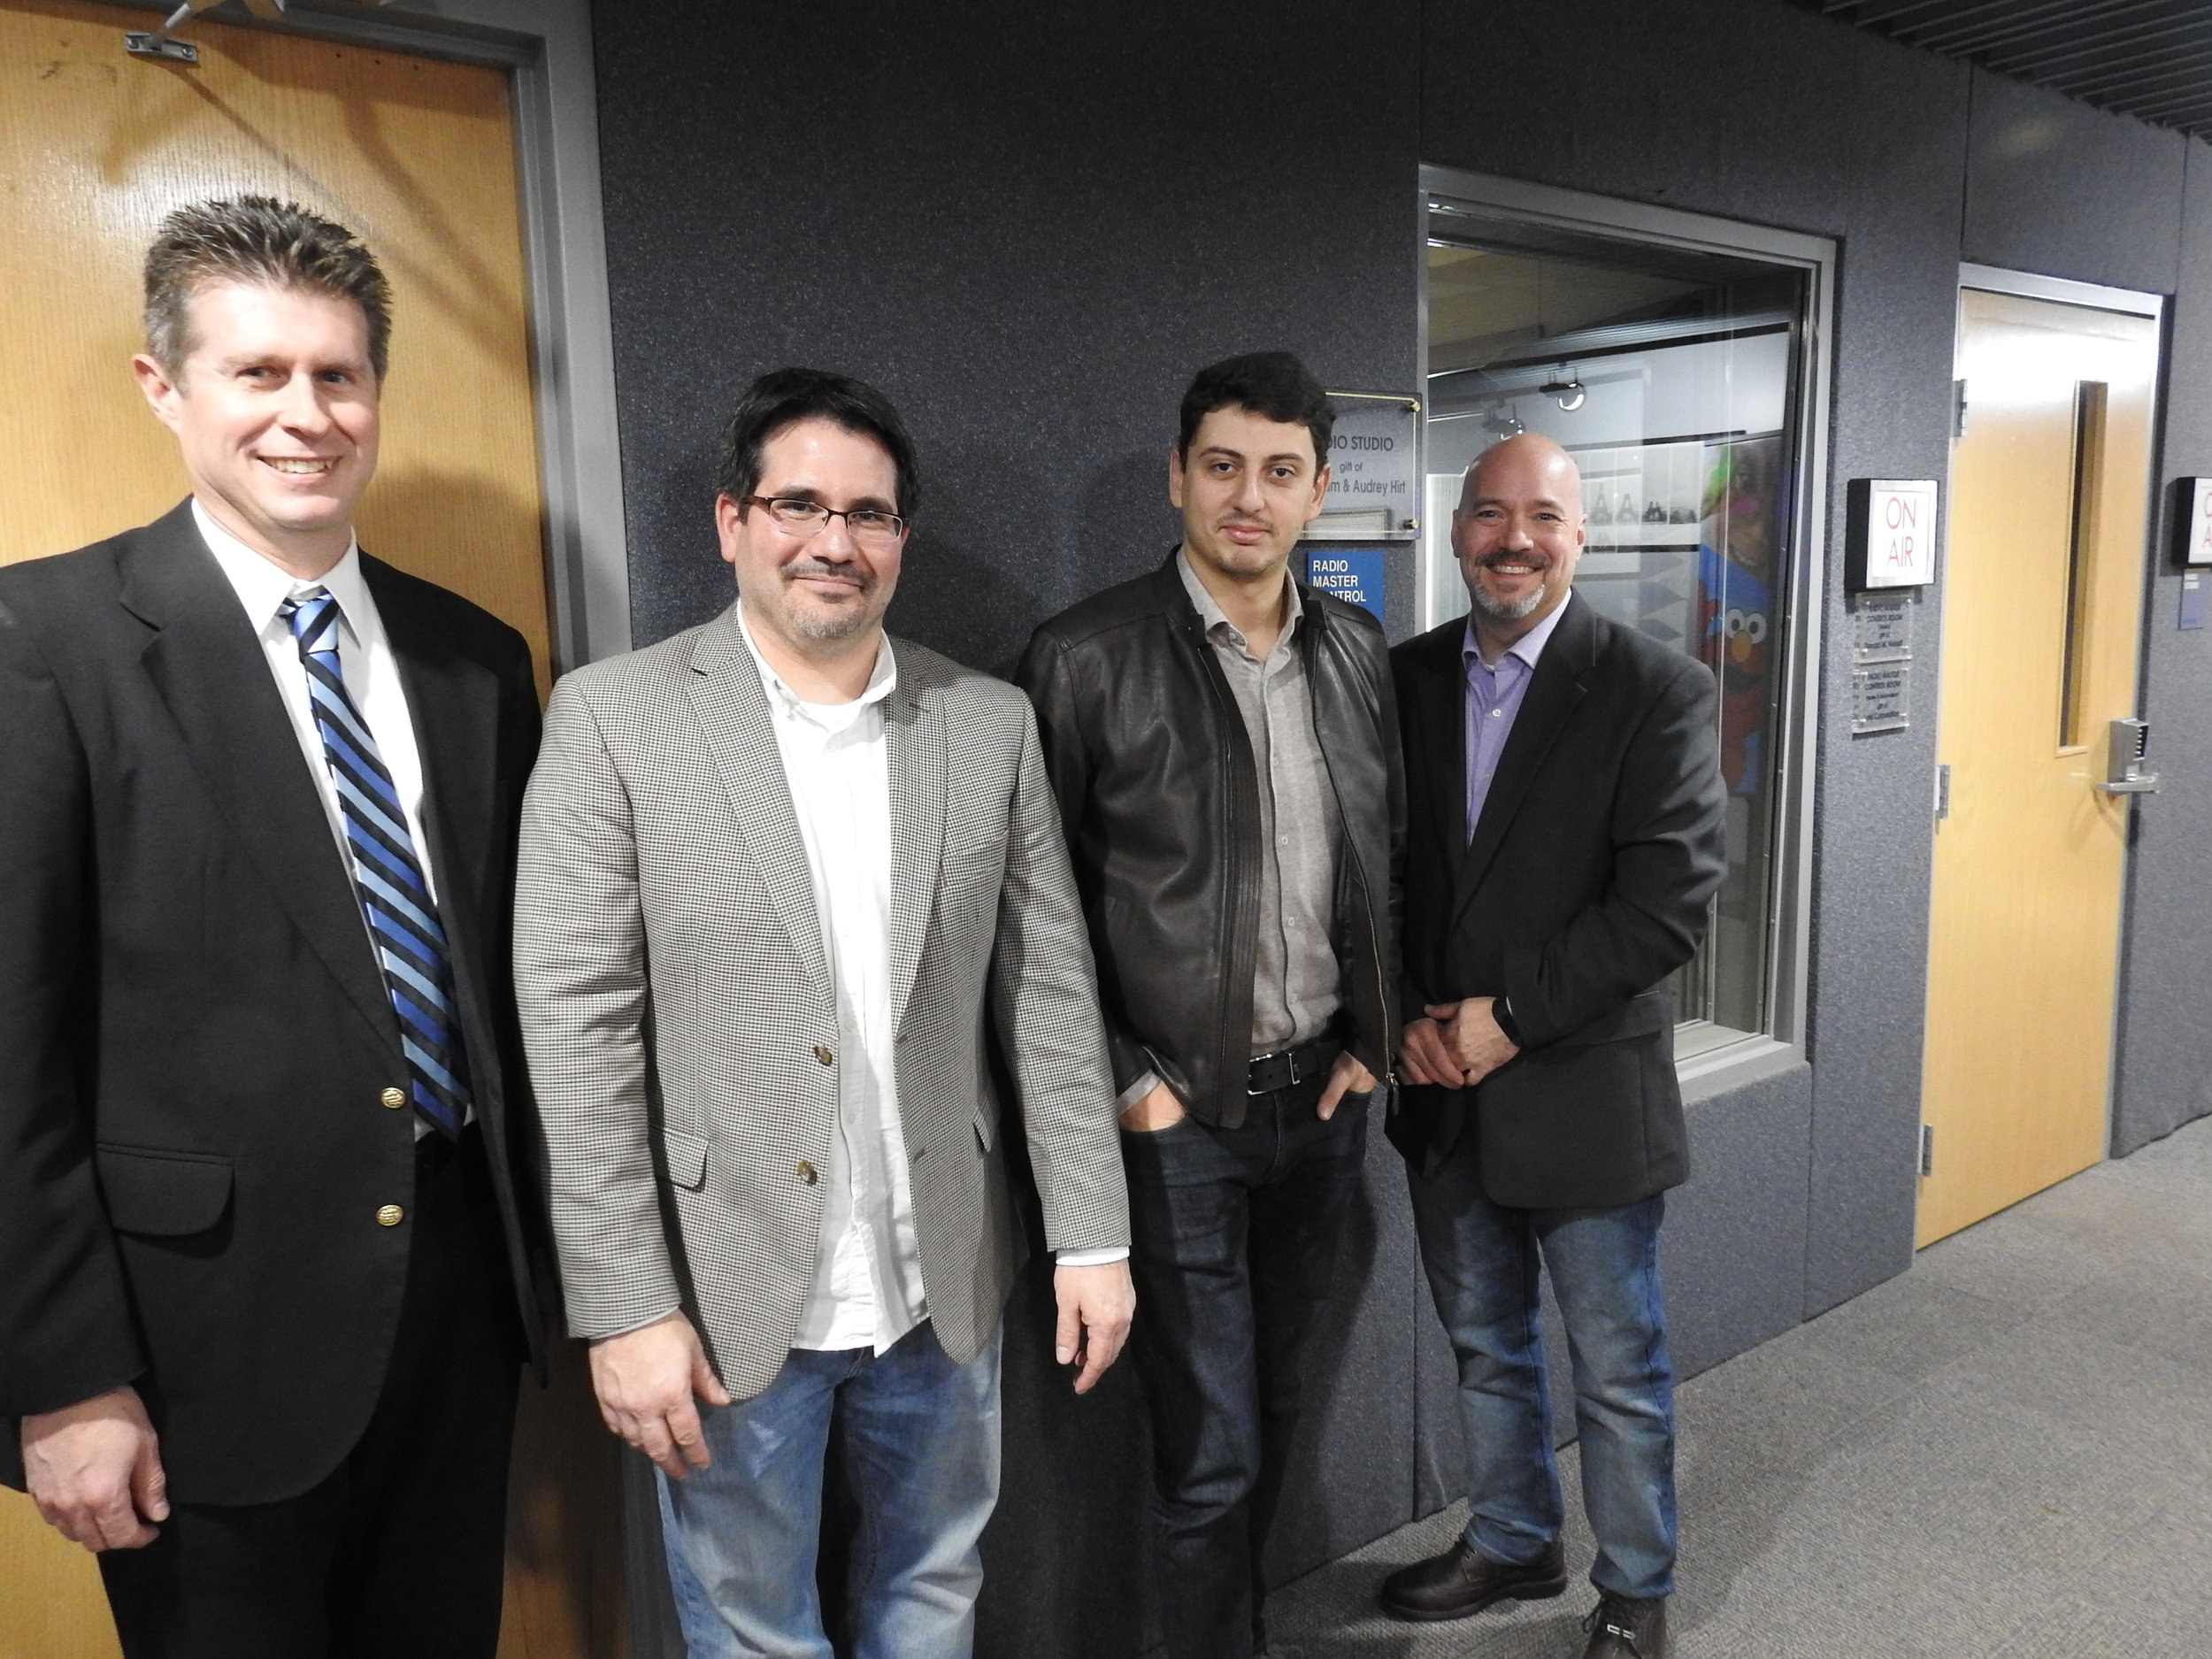 Nathan Hess, piano, Steve Weiser, Executive Director, Narek Hakhnazaryan, cello and Brian Hannah, host